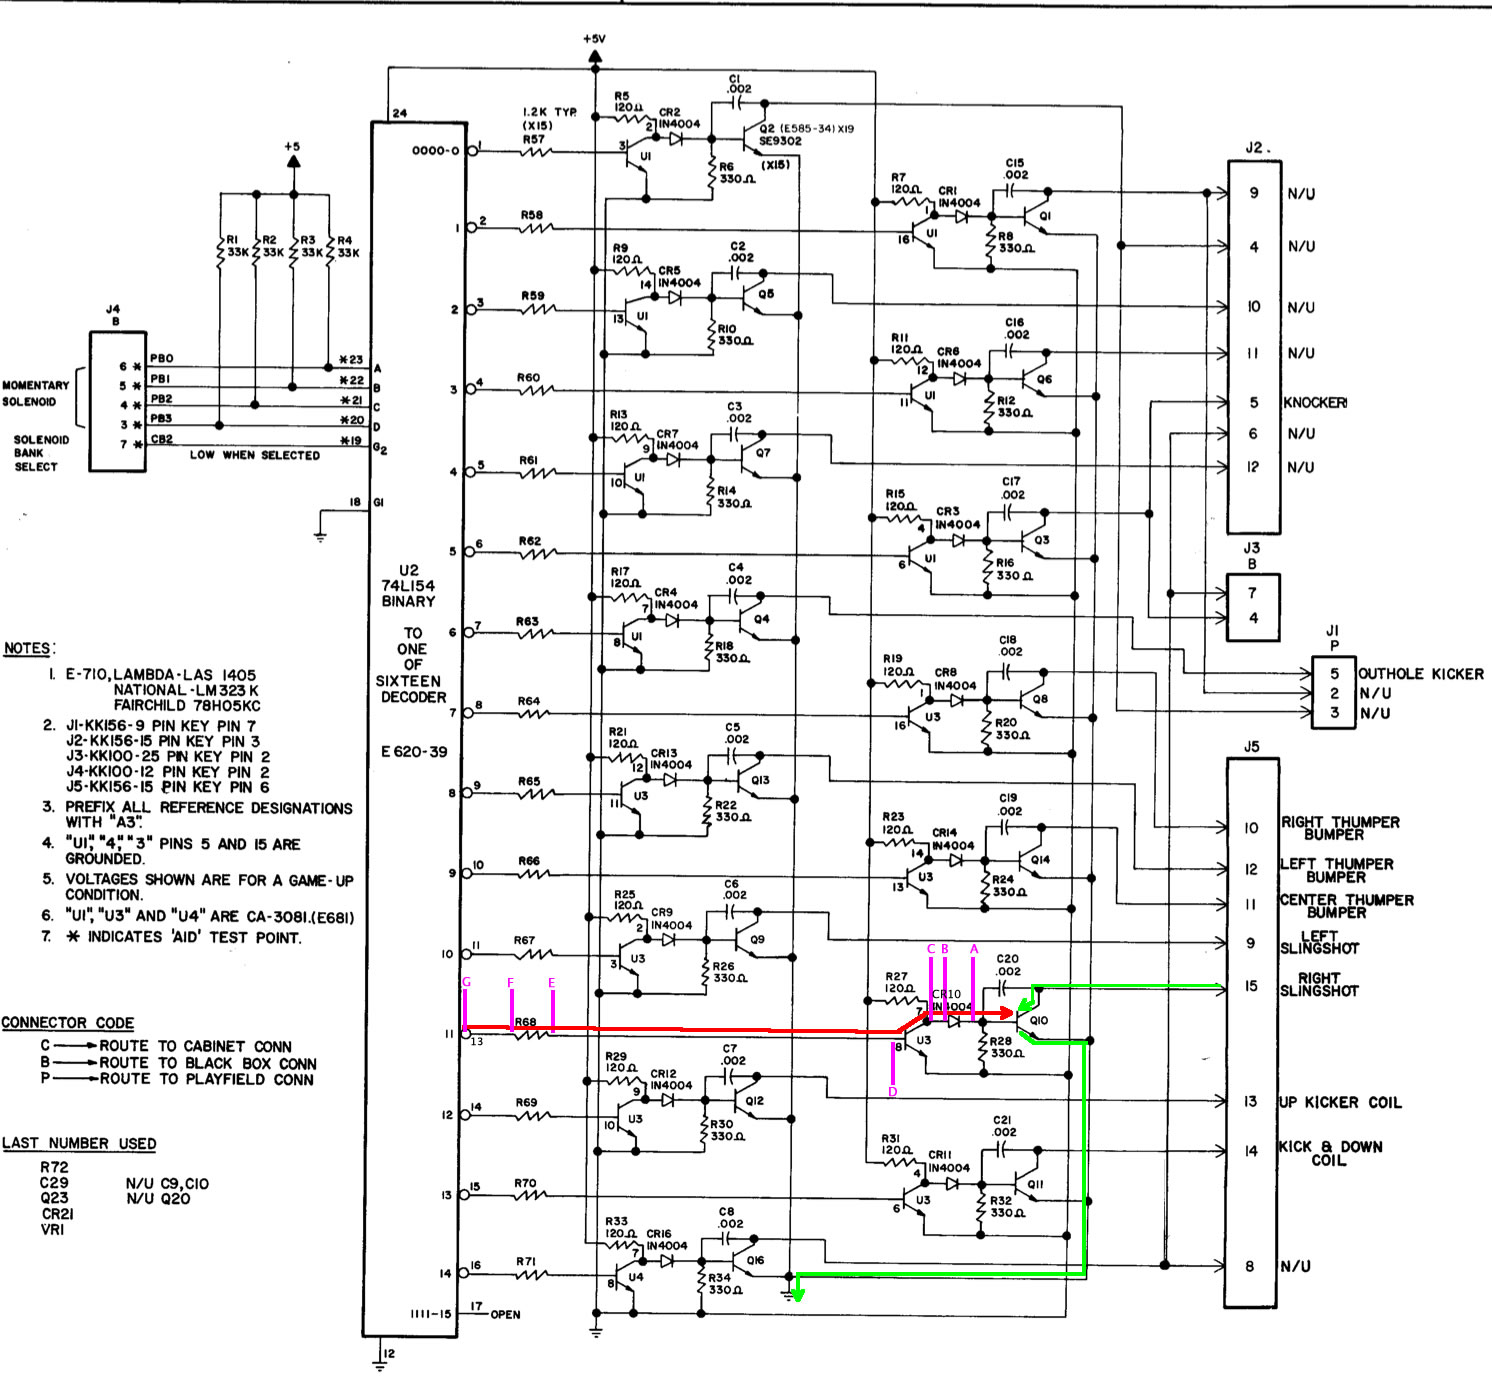 How To Use A Digital Logic Probe For Pinball Repair Easy Step By Circuit Symbols View Diagram Schematic Driver Board